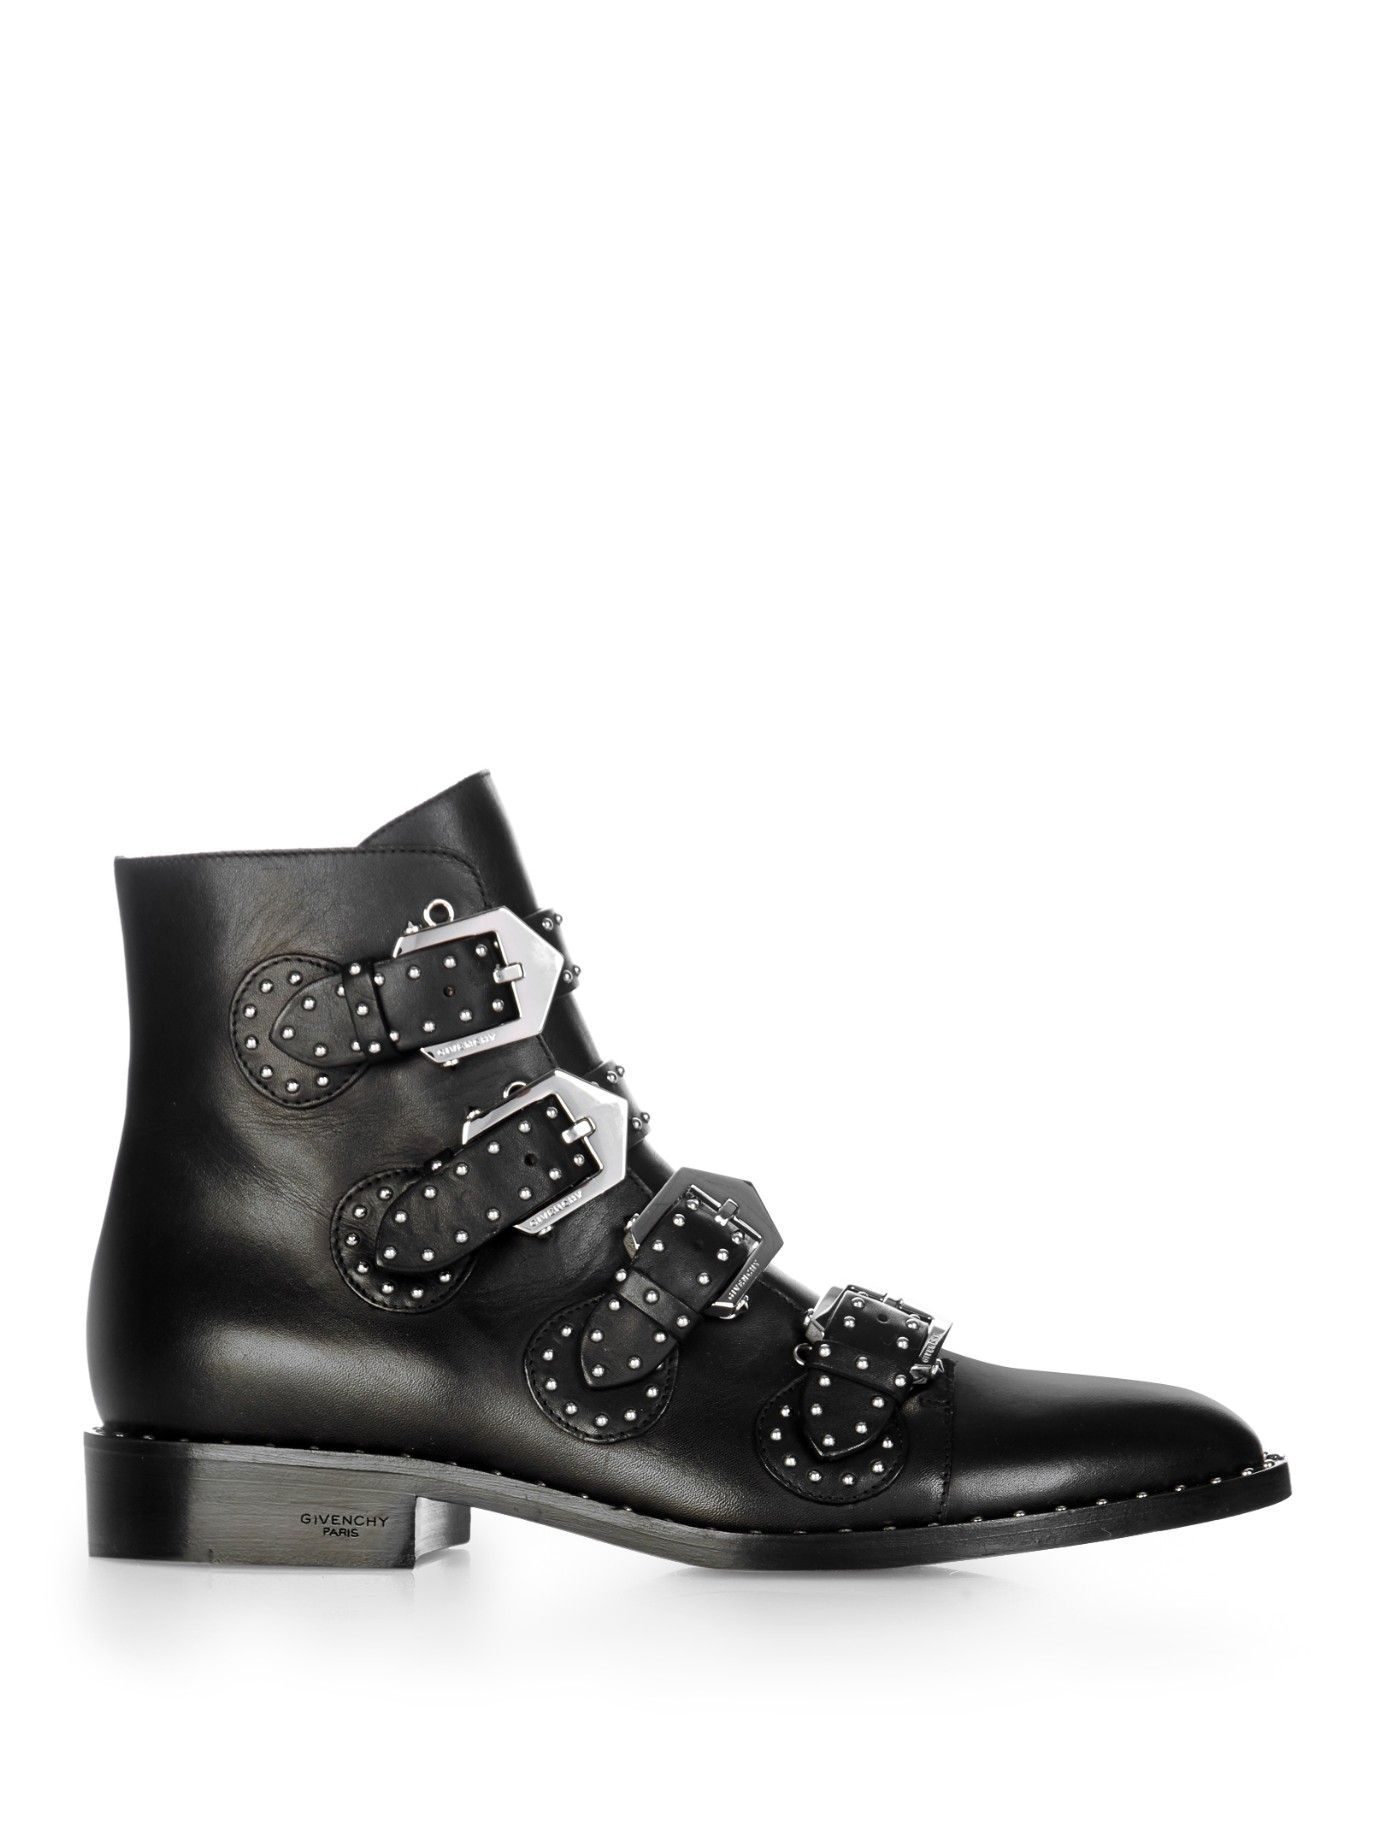 Discount Givenchy Black Prue Studded Leather Ankle Boots for Women Online